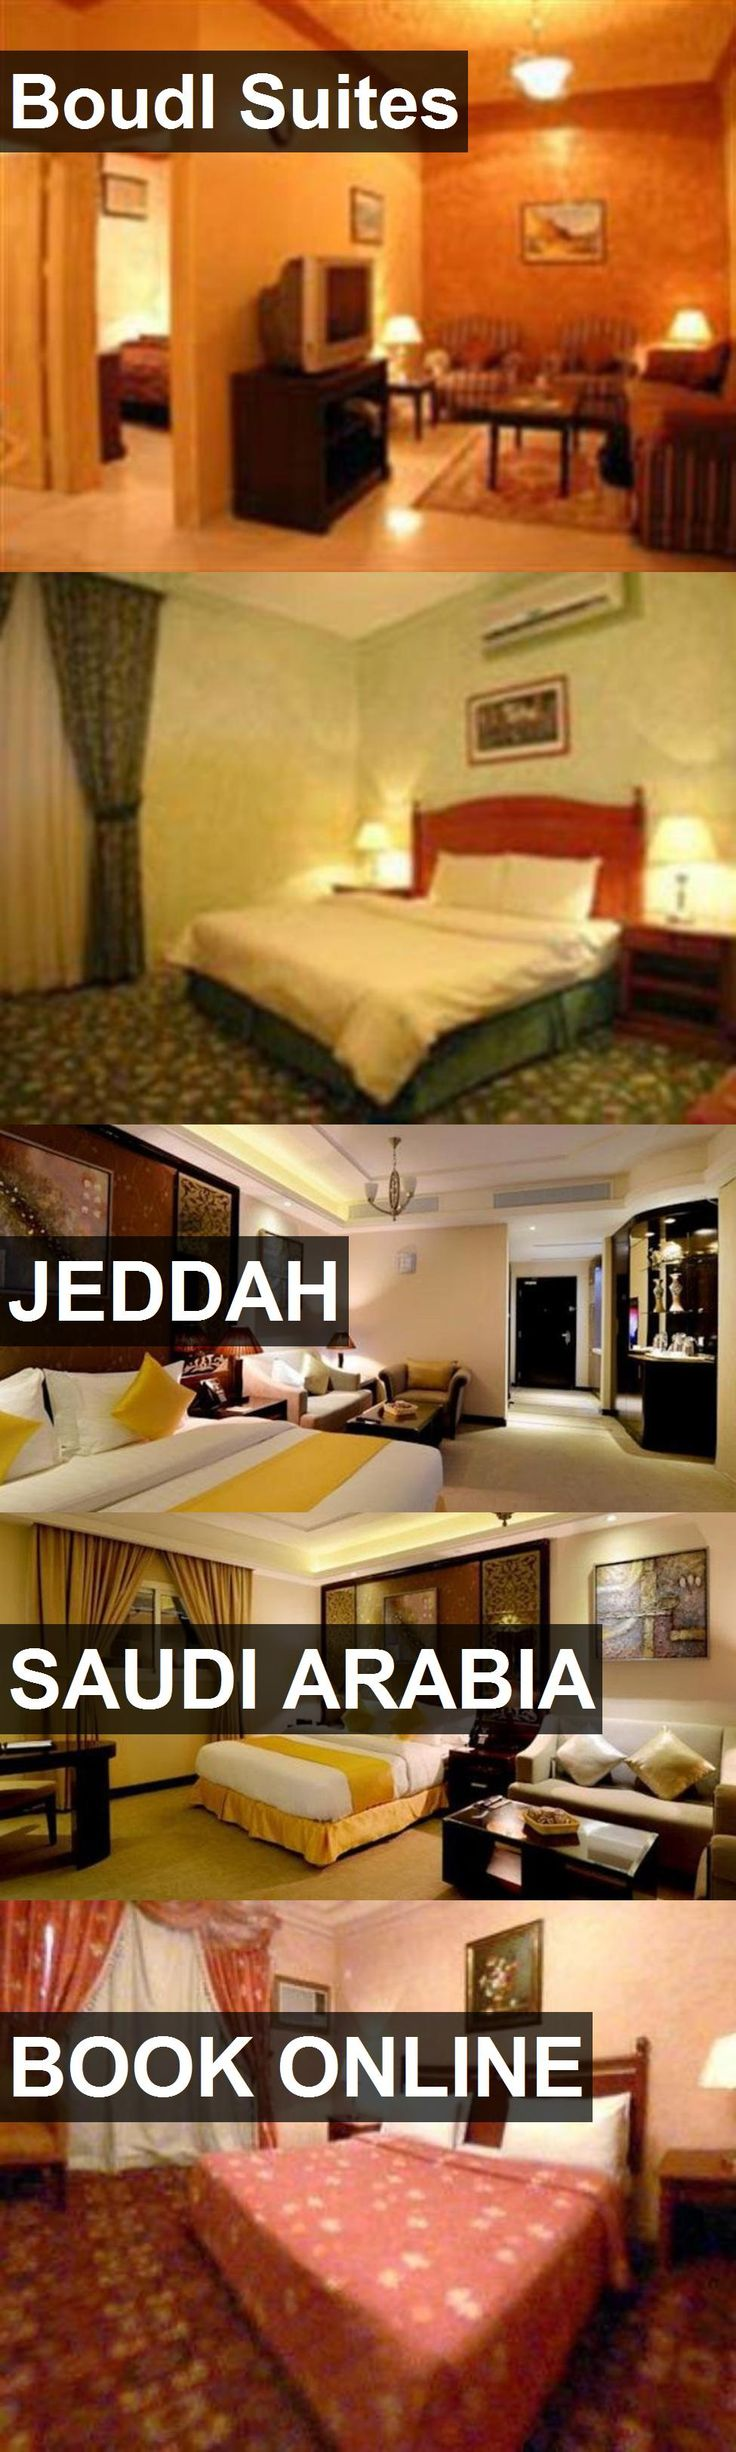 Hotel Boudl Suites In Jeddah Saudi Arabia For More Information Photos Reviews